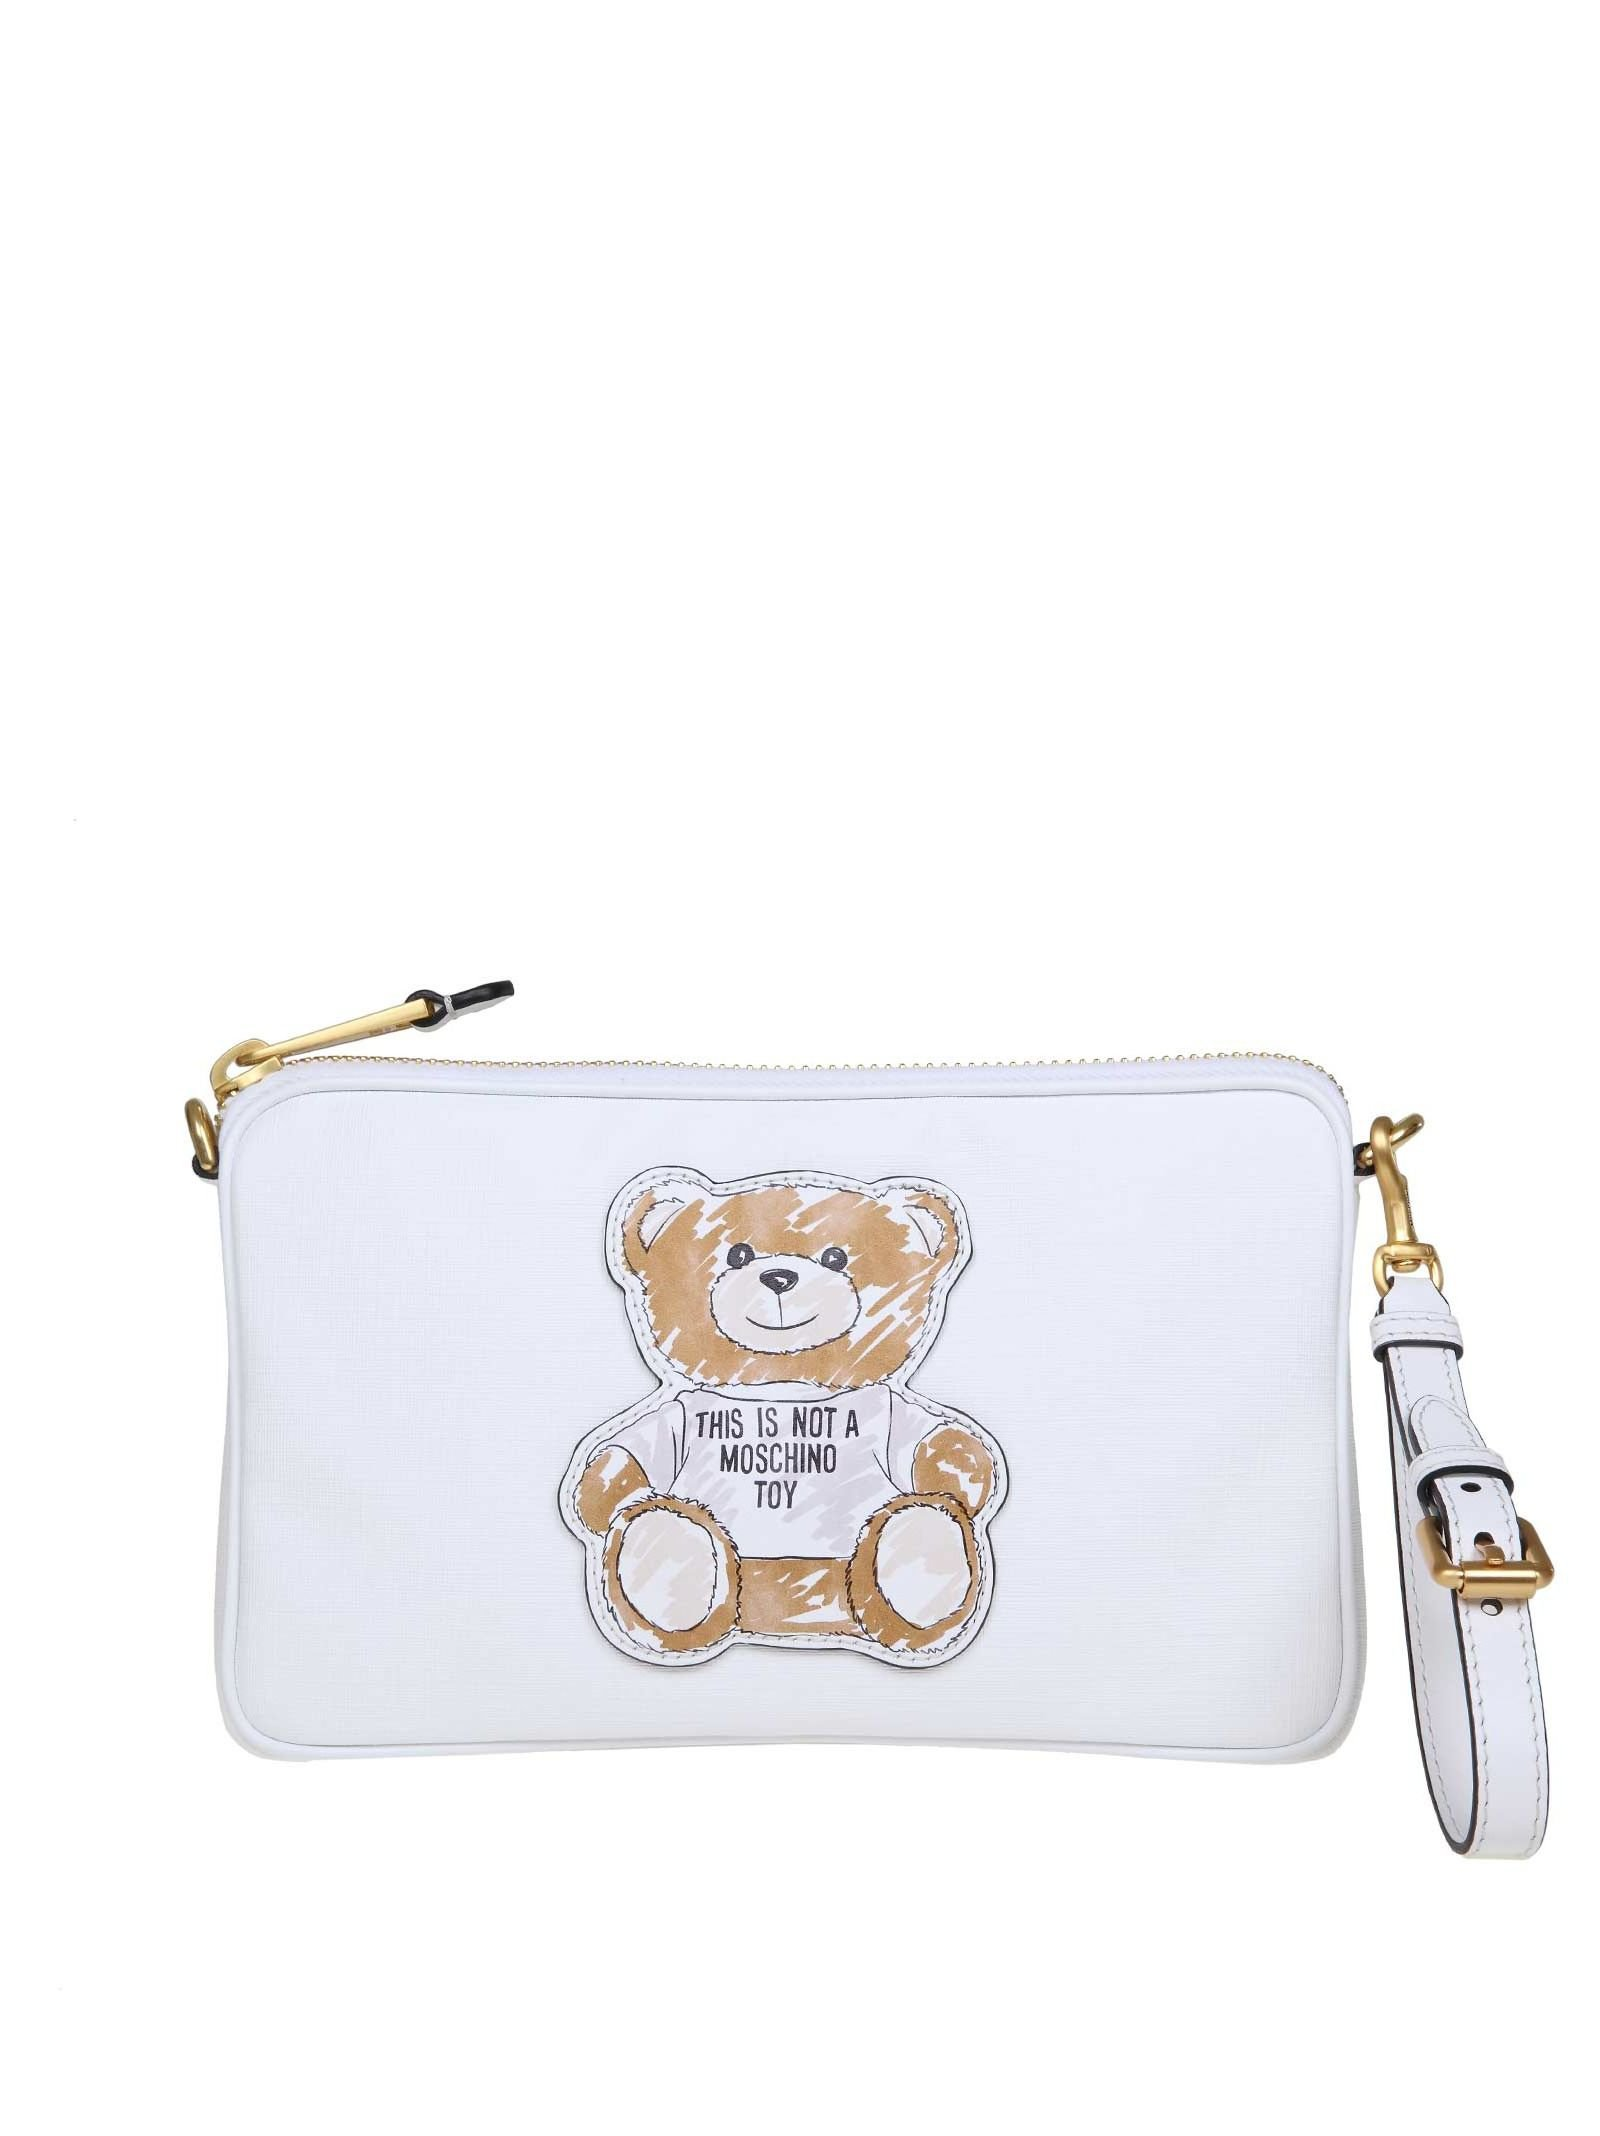 Moschino Teddy Shoulder Bag In White Color Leather